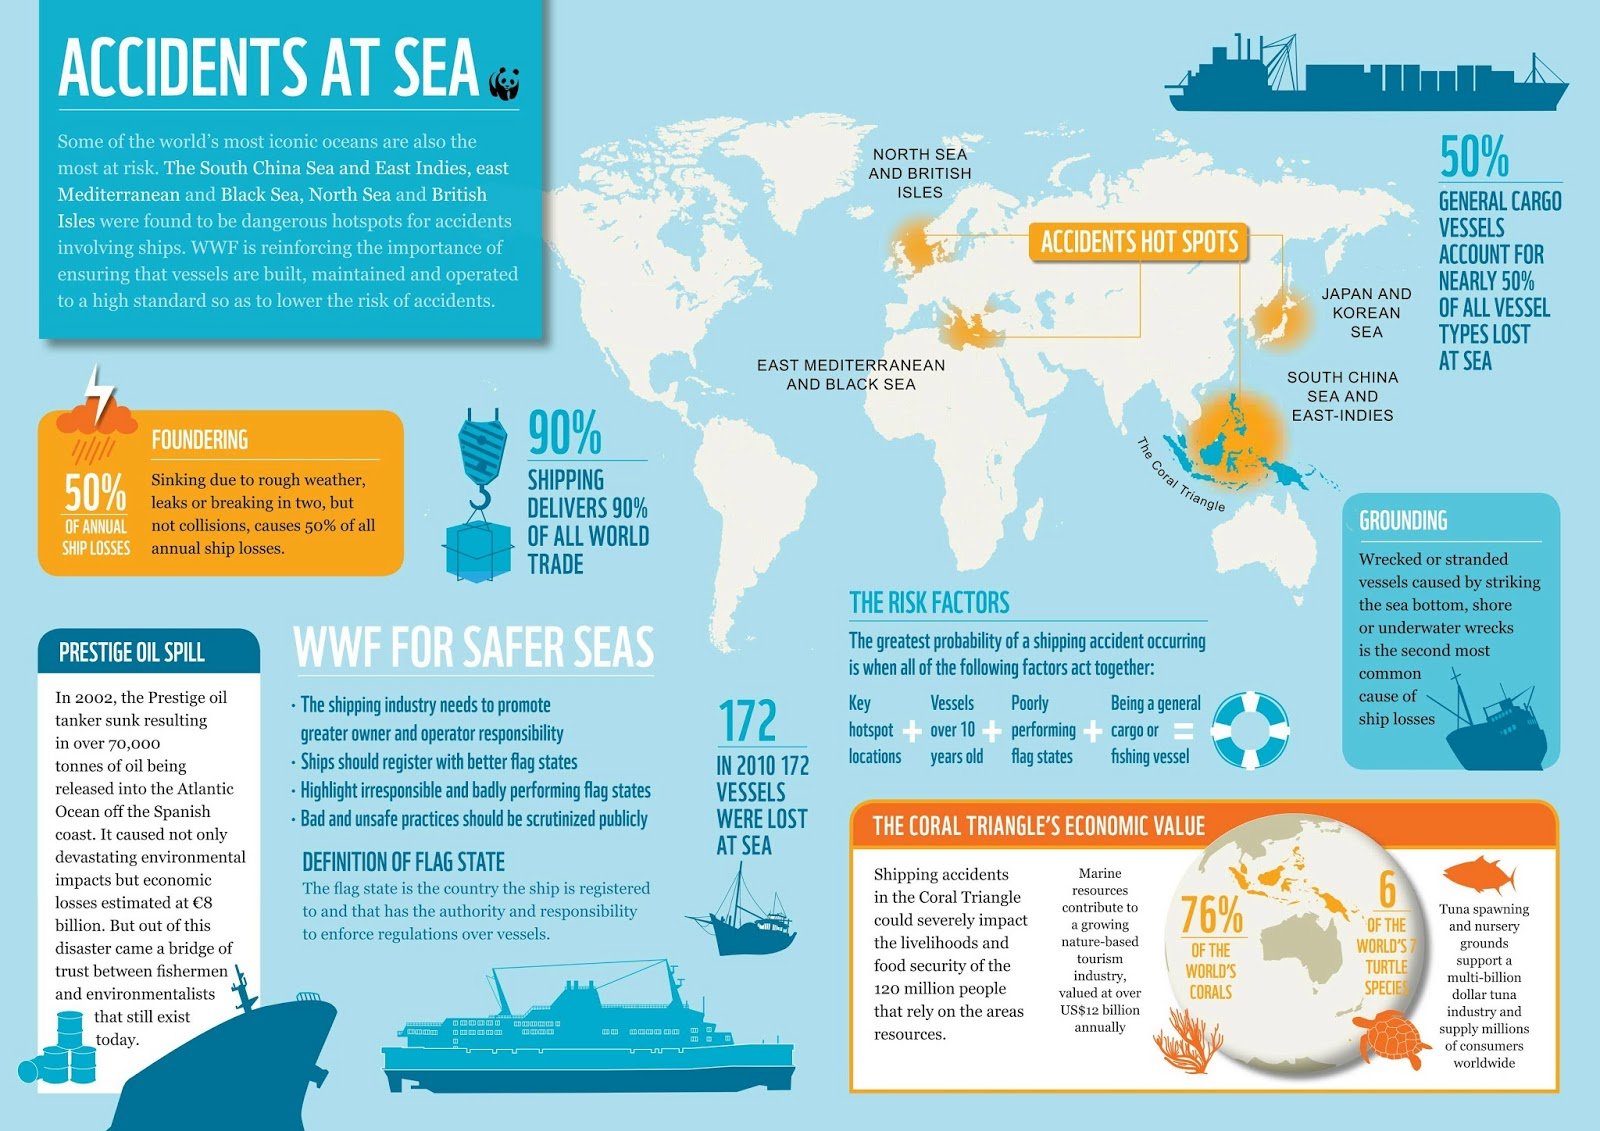 South China Sea, Mediterranean and North Sea are shipping accidents hotspots